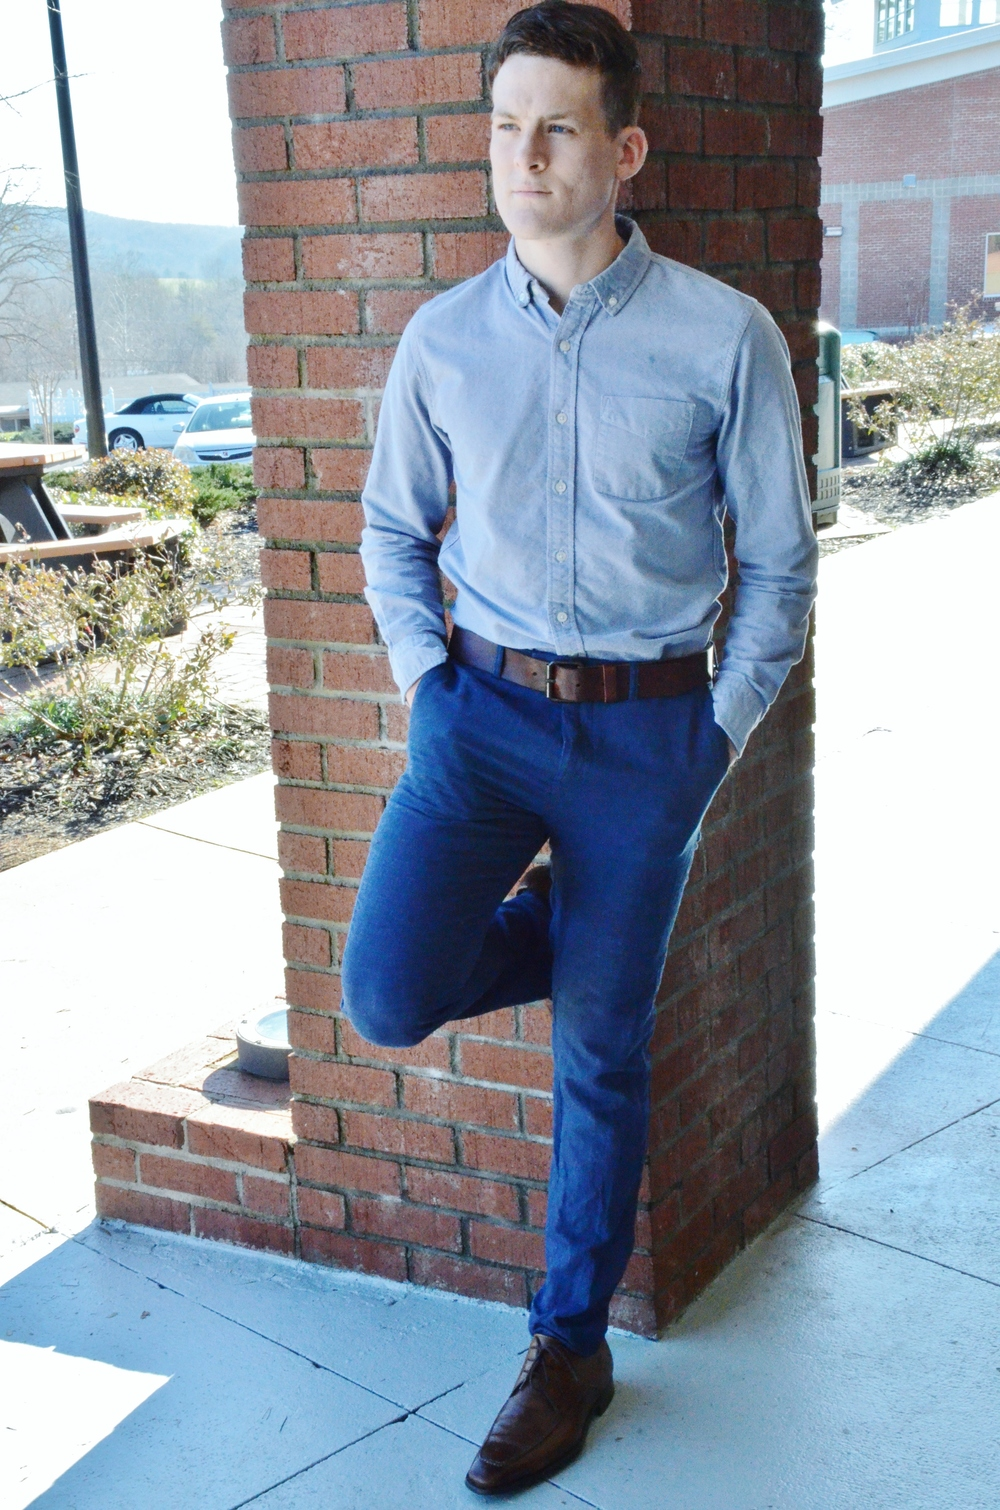 Tyler Ezsol can always be seen as fashionable walking around campus. He is wearing nice blue trousers from H&M along with a matching button down, long sleeved shirt.